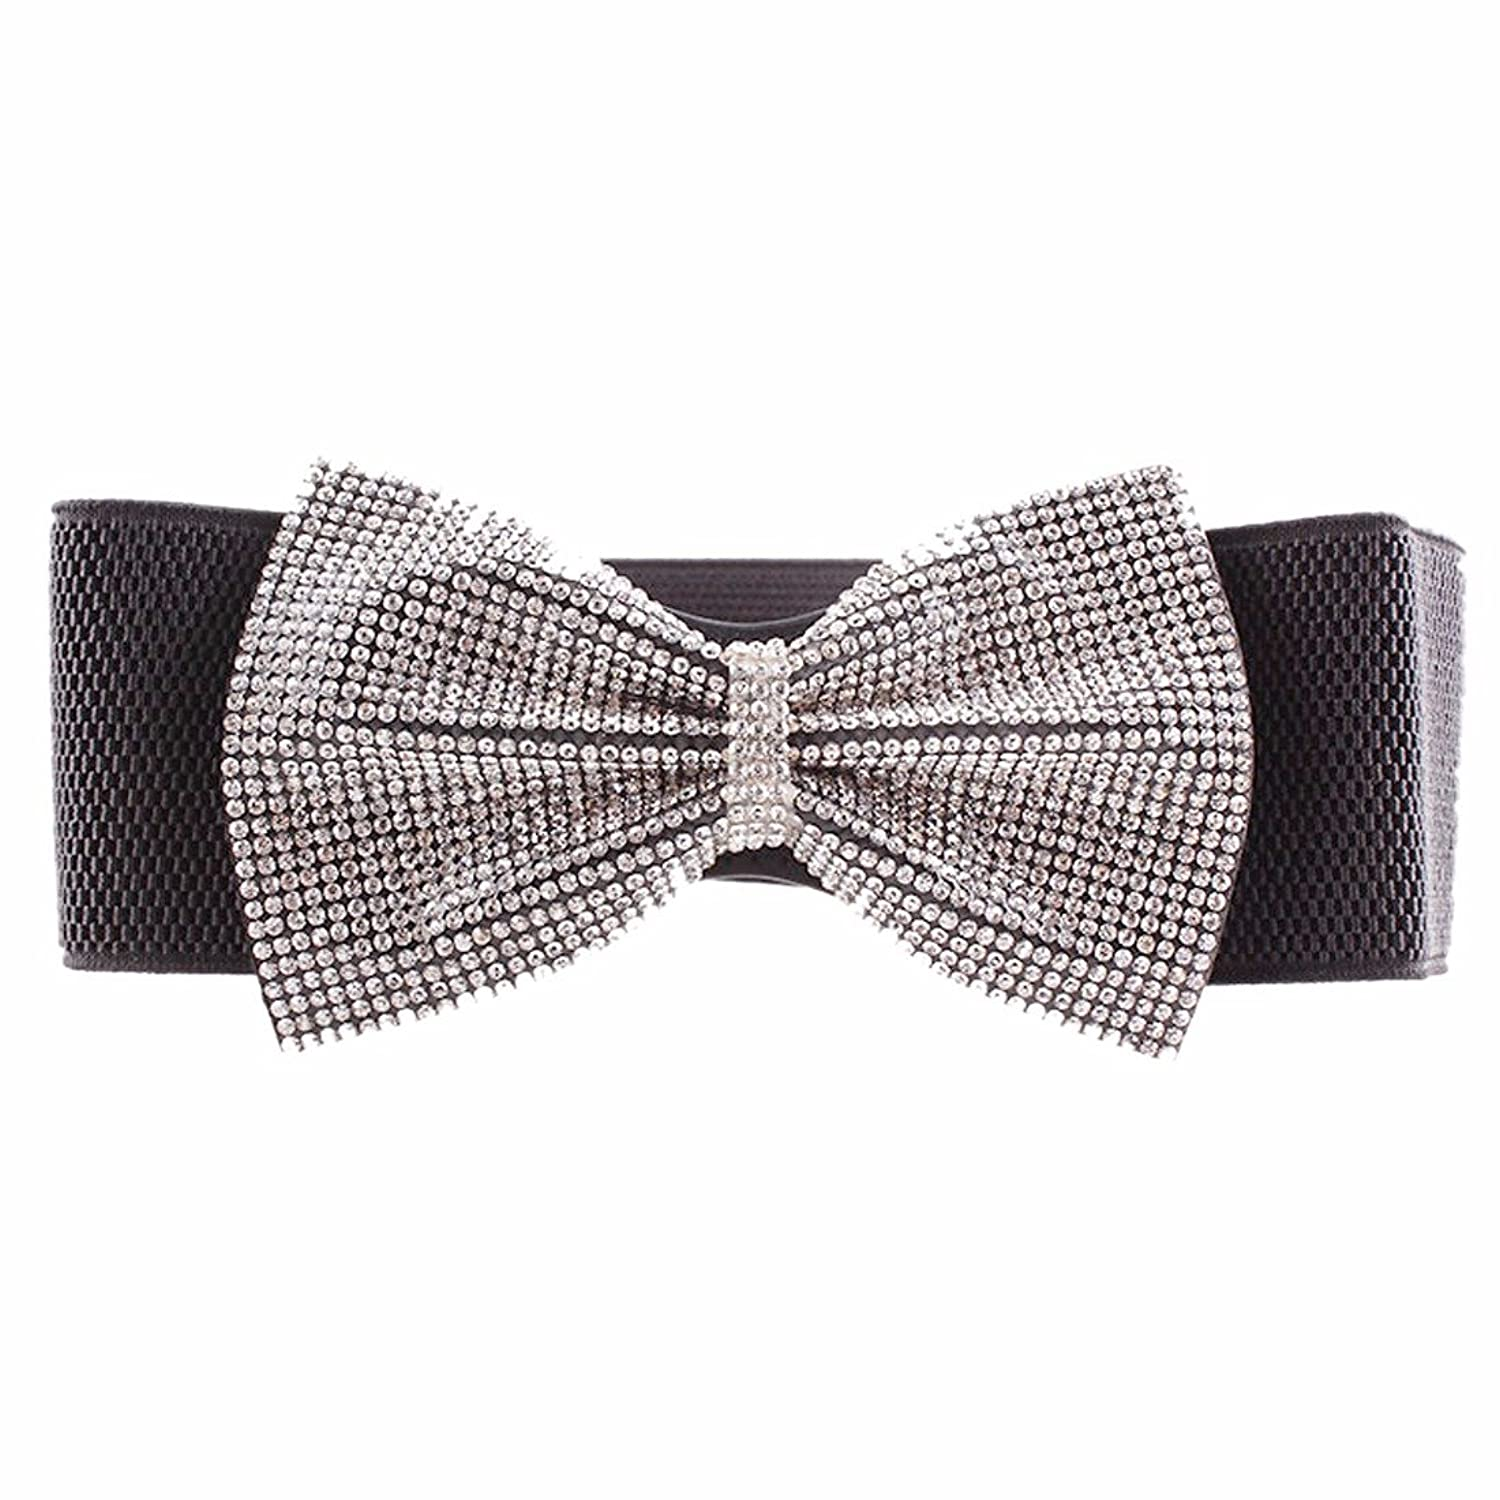 Black Womens Rhinestone Bowknot Wide Elastic Skinny Thin Bet Waist Waistband New